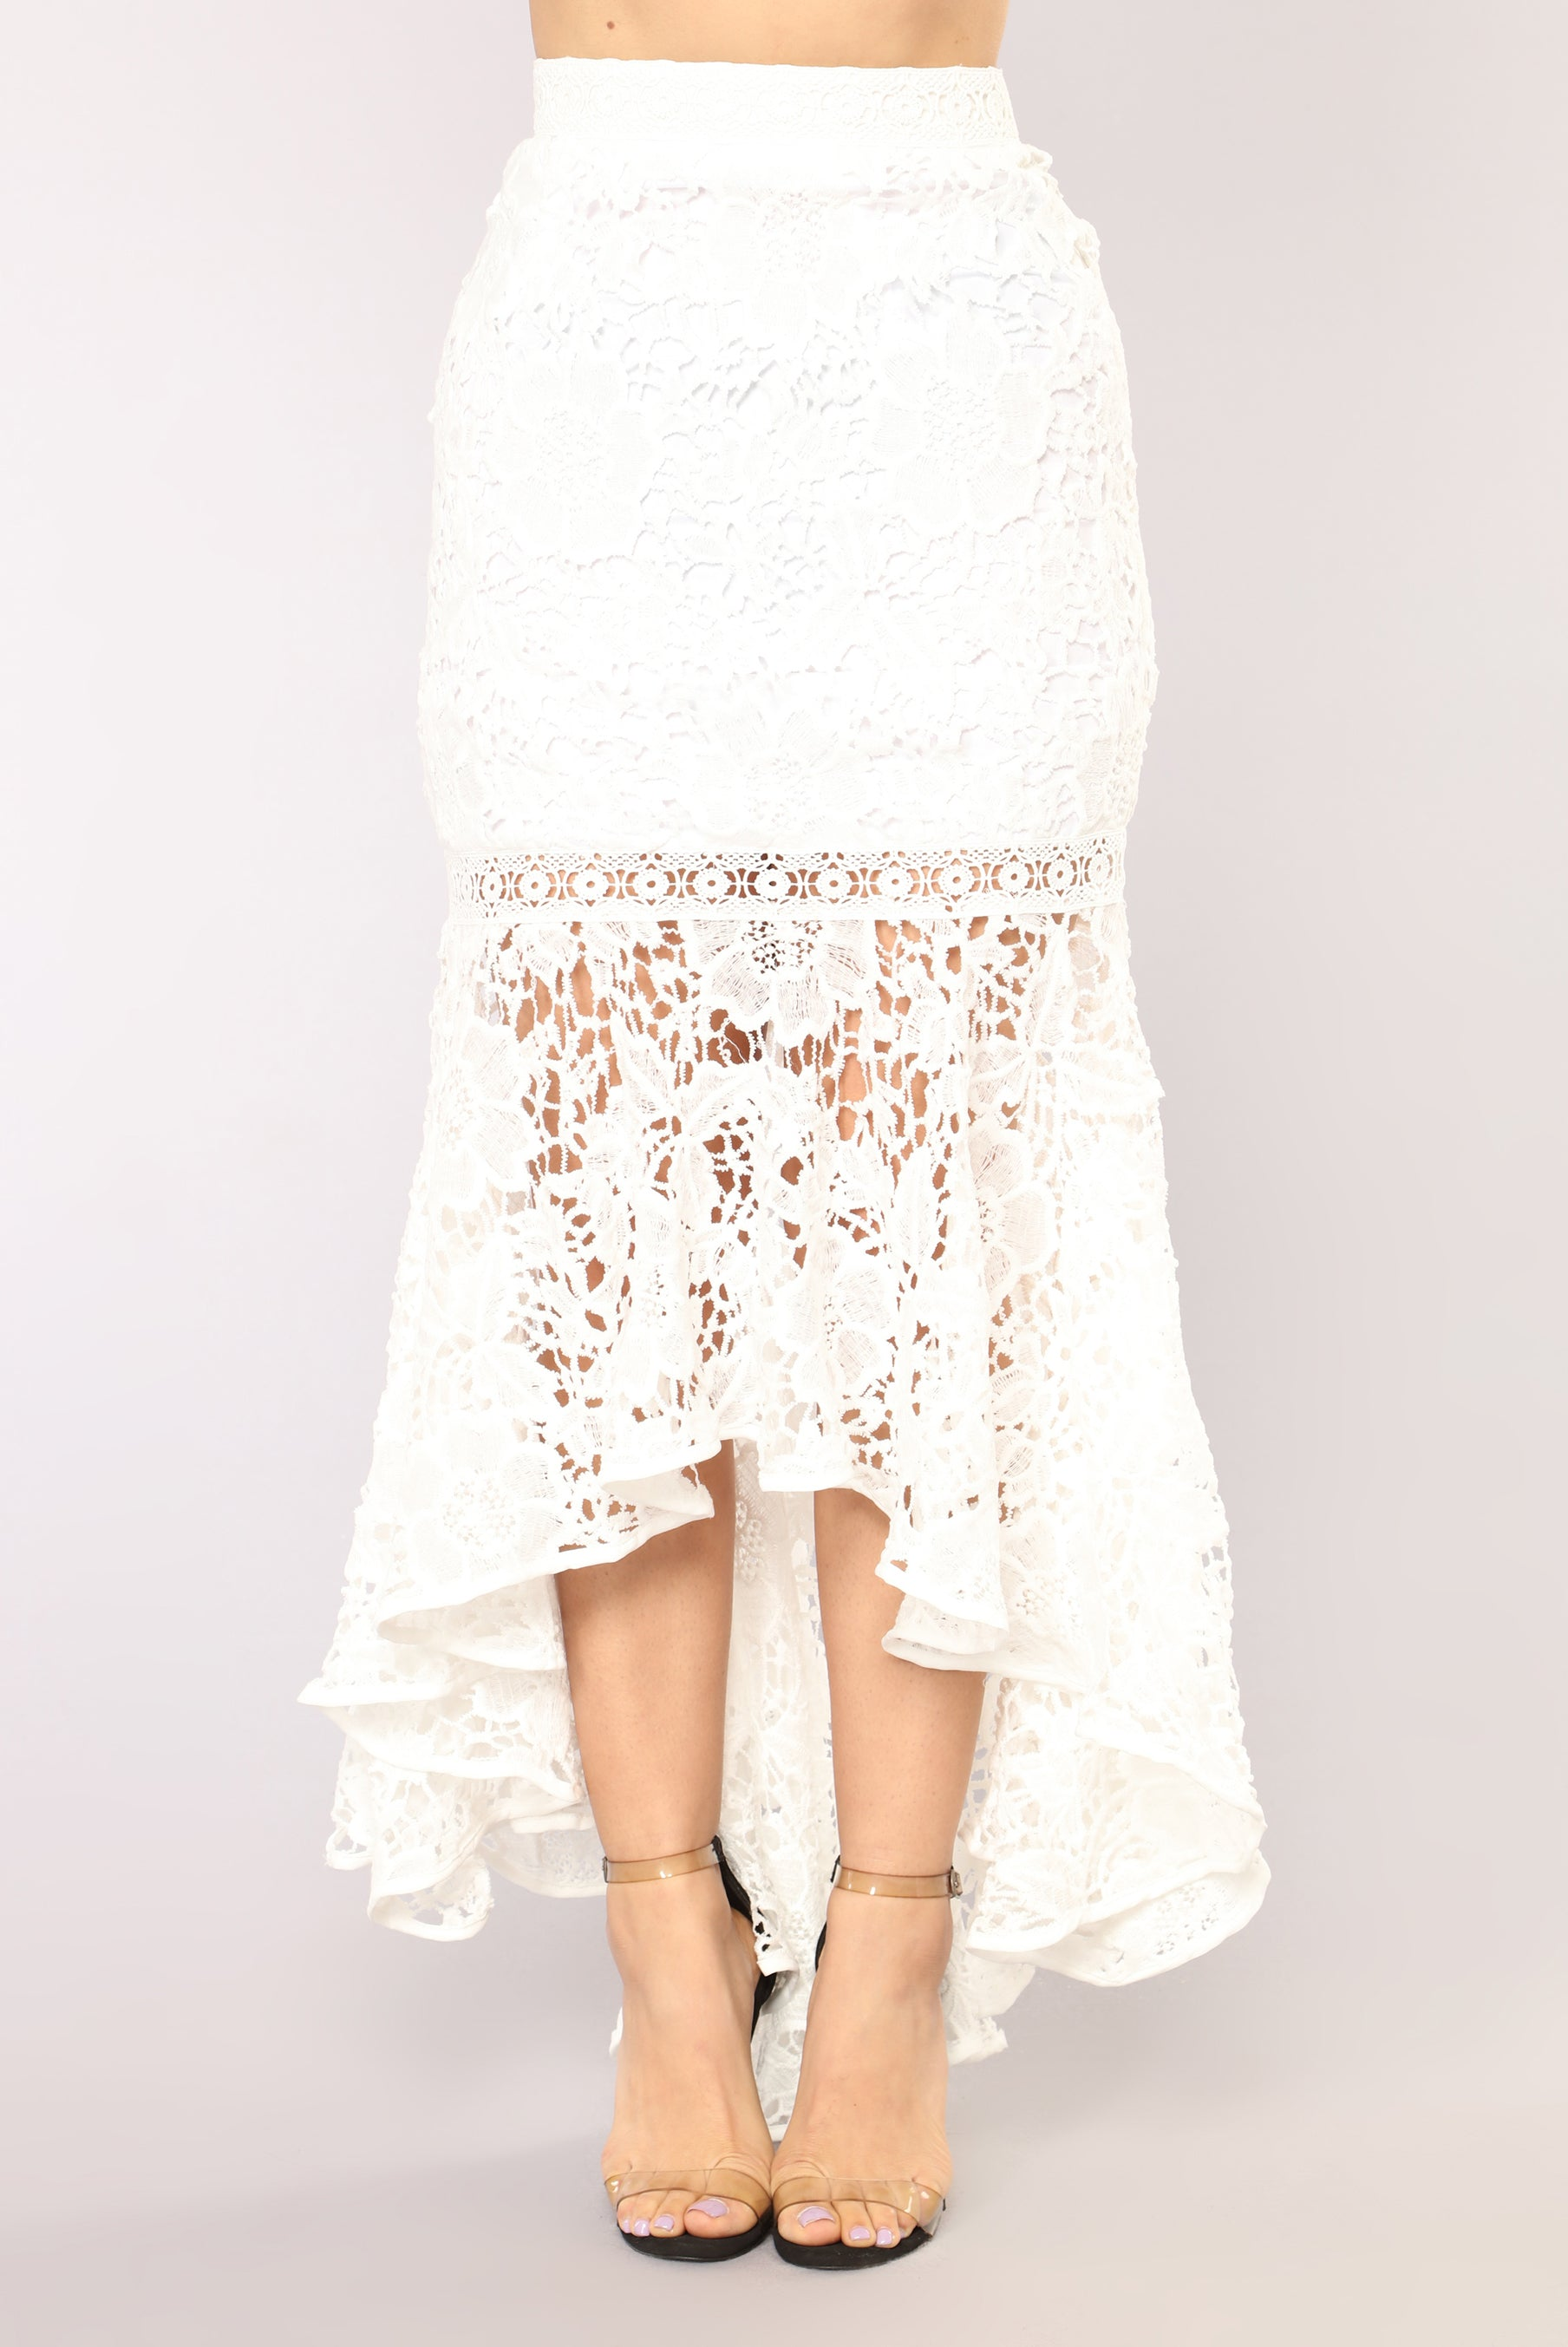 Very Not Your Average Girl Lace Skirt - White VG62